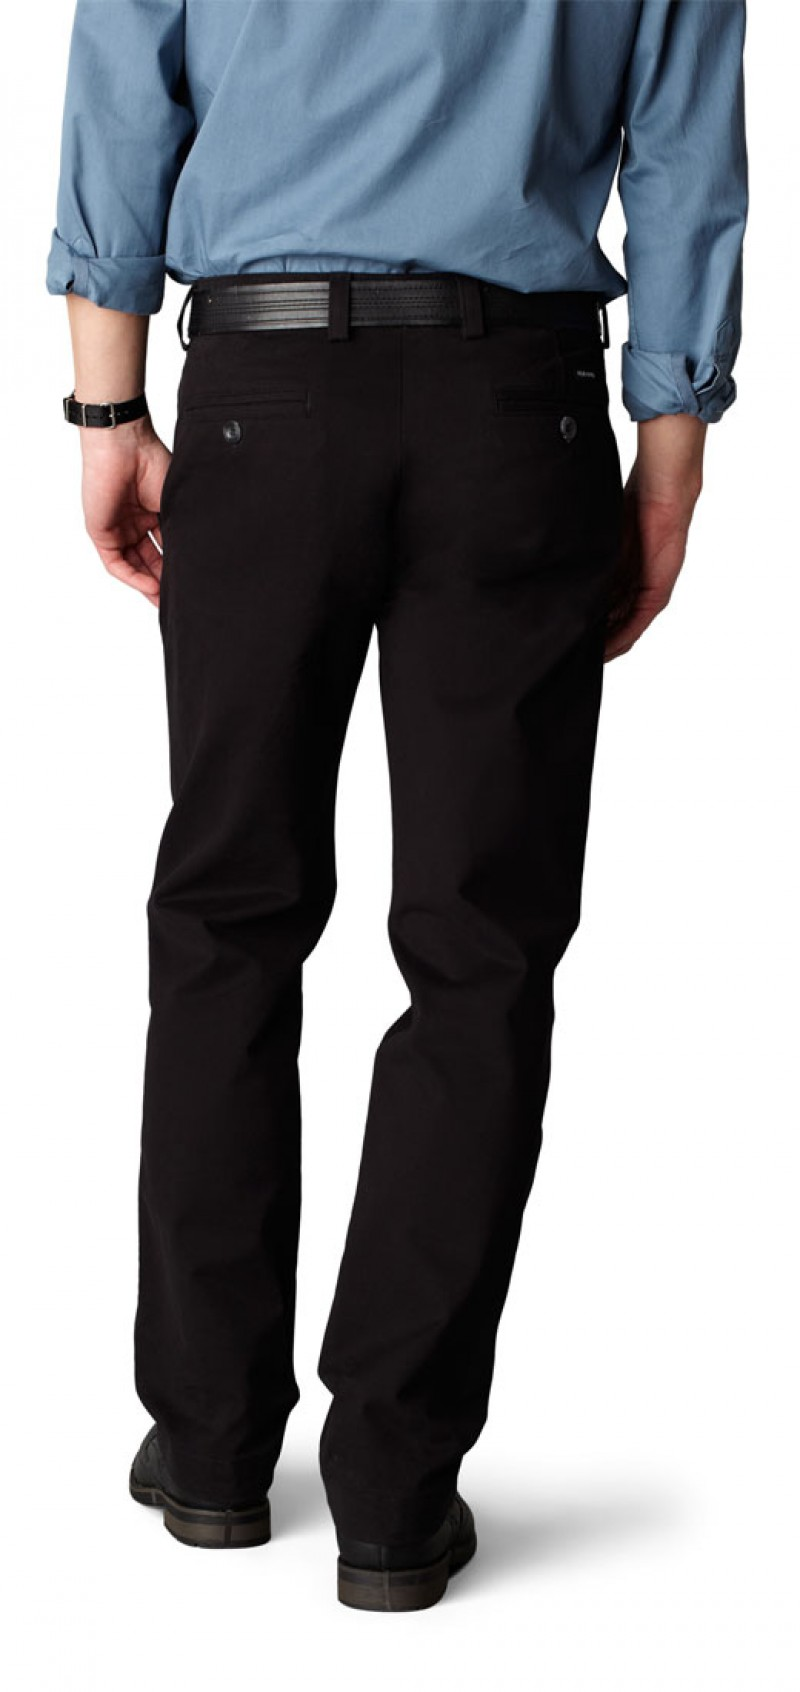 Dockers Hose - D1 Stretch Twill - Black